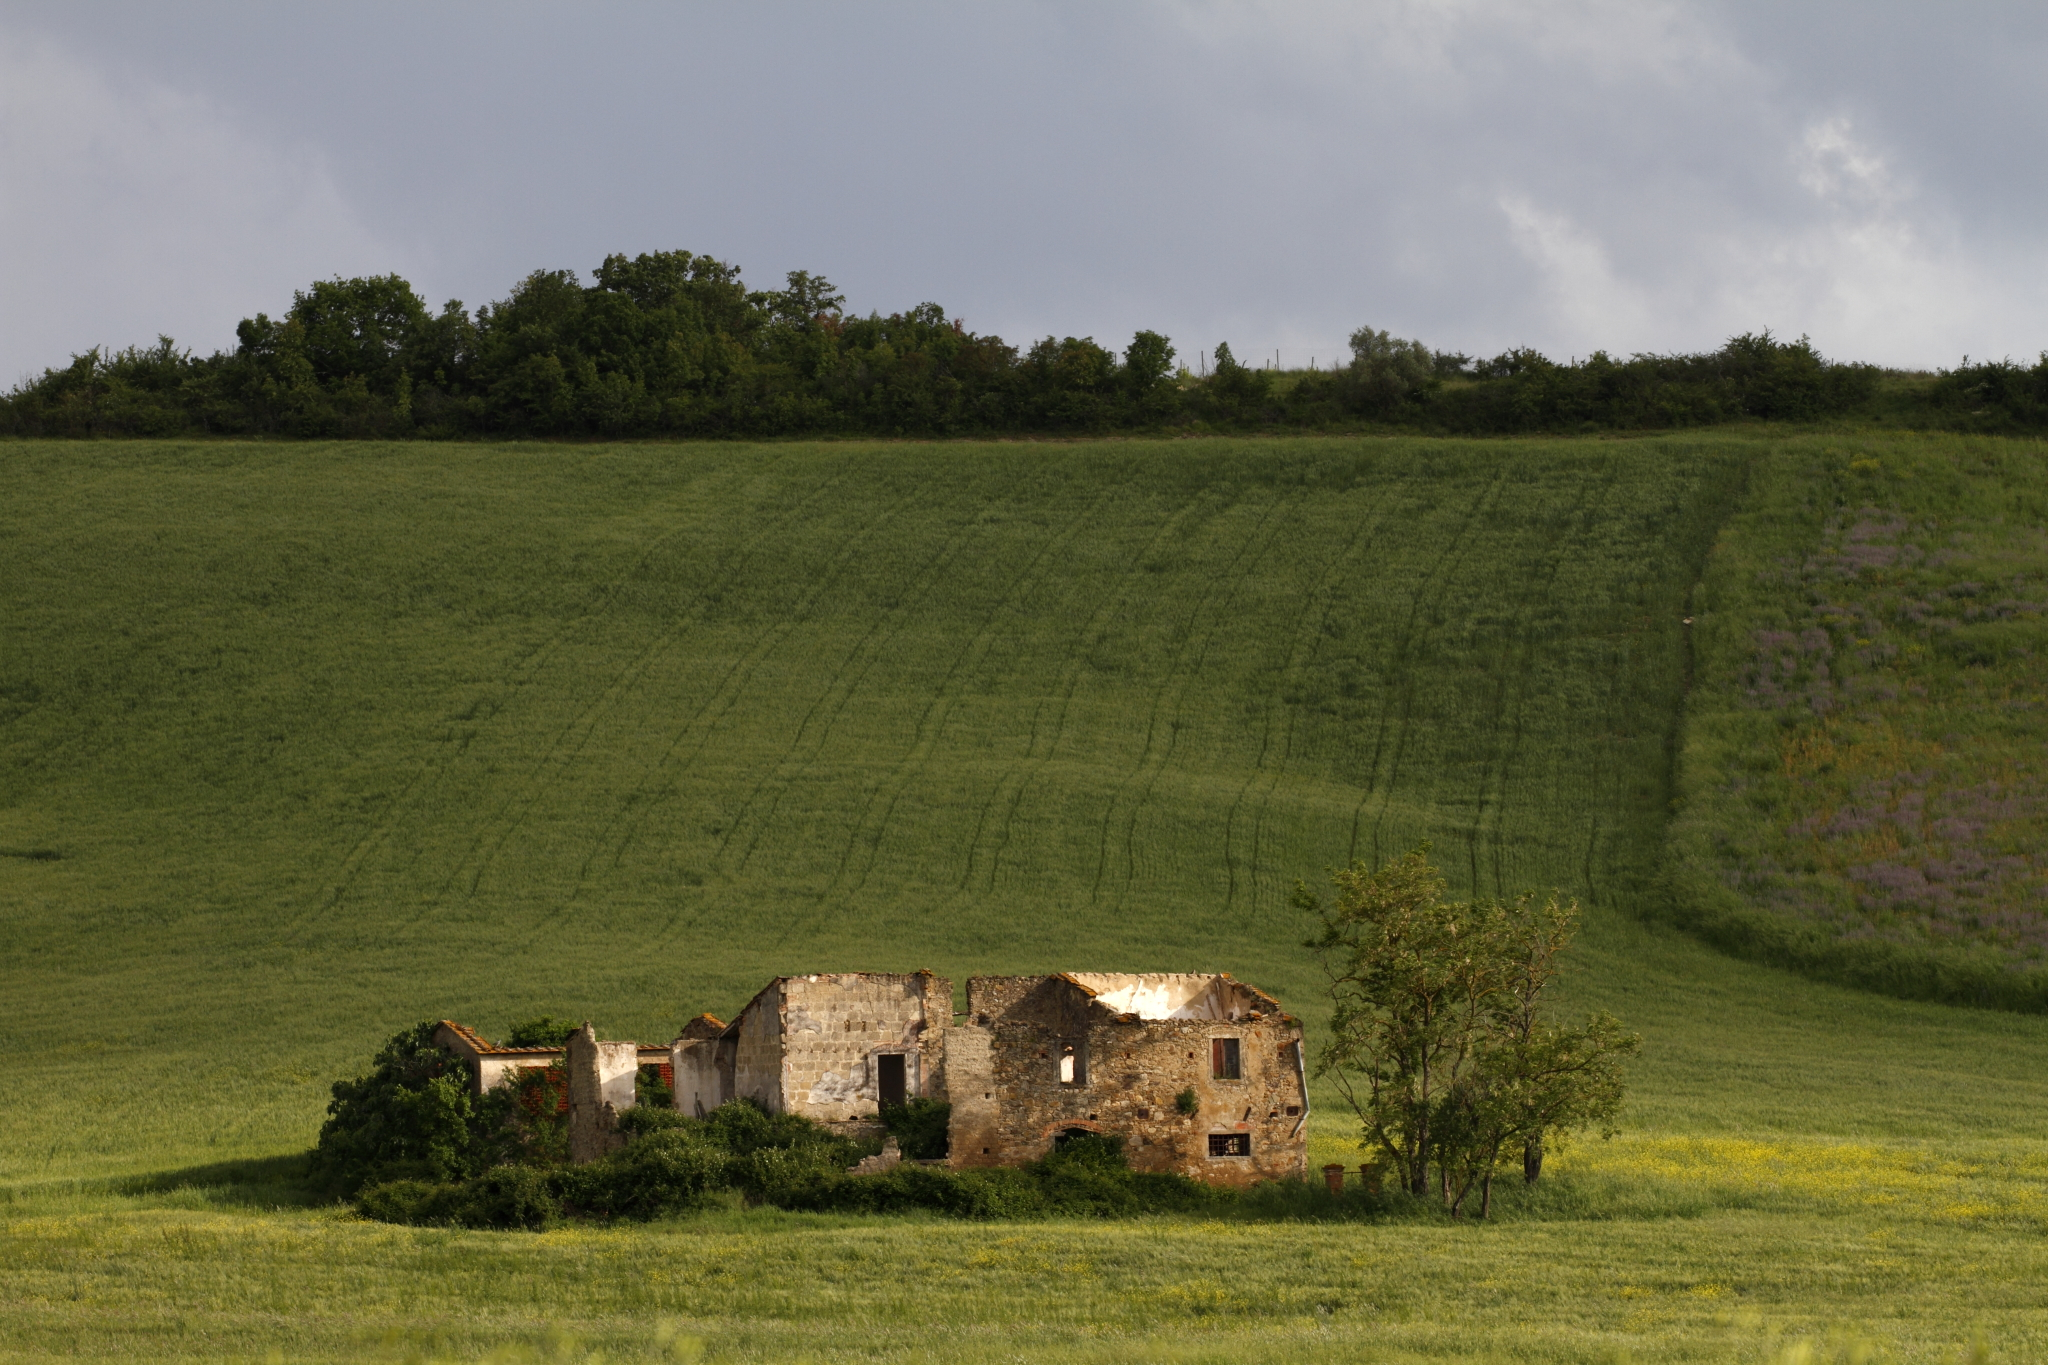 Ruined farm in Chianti